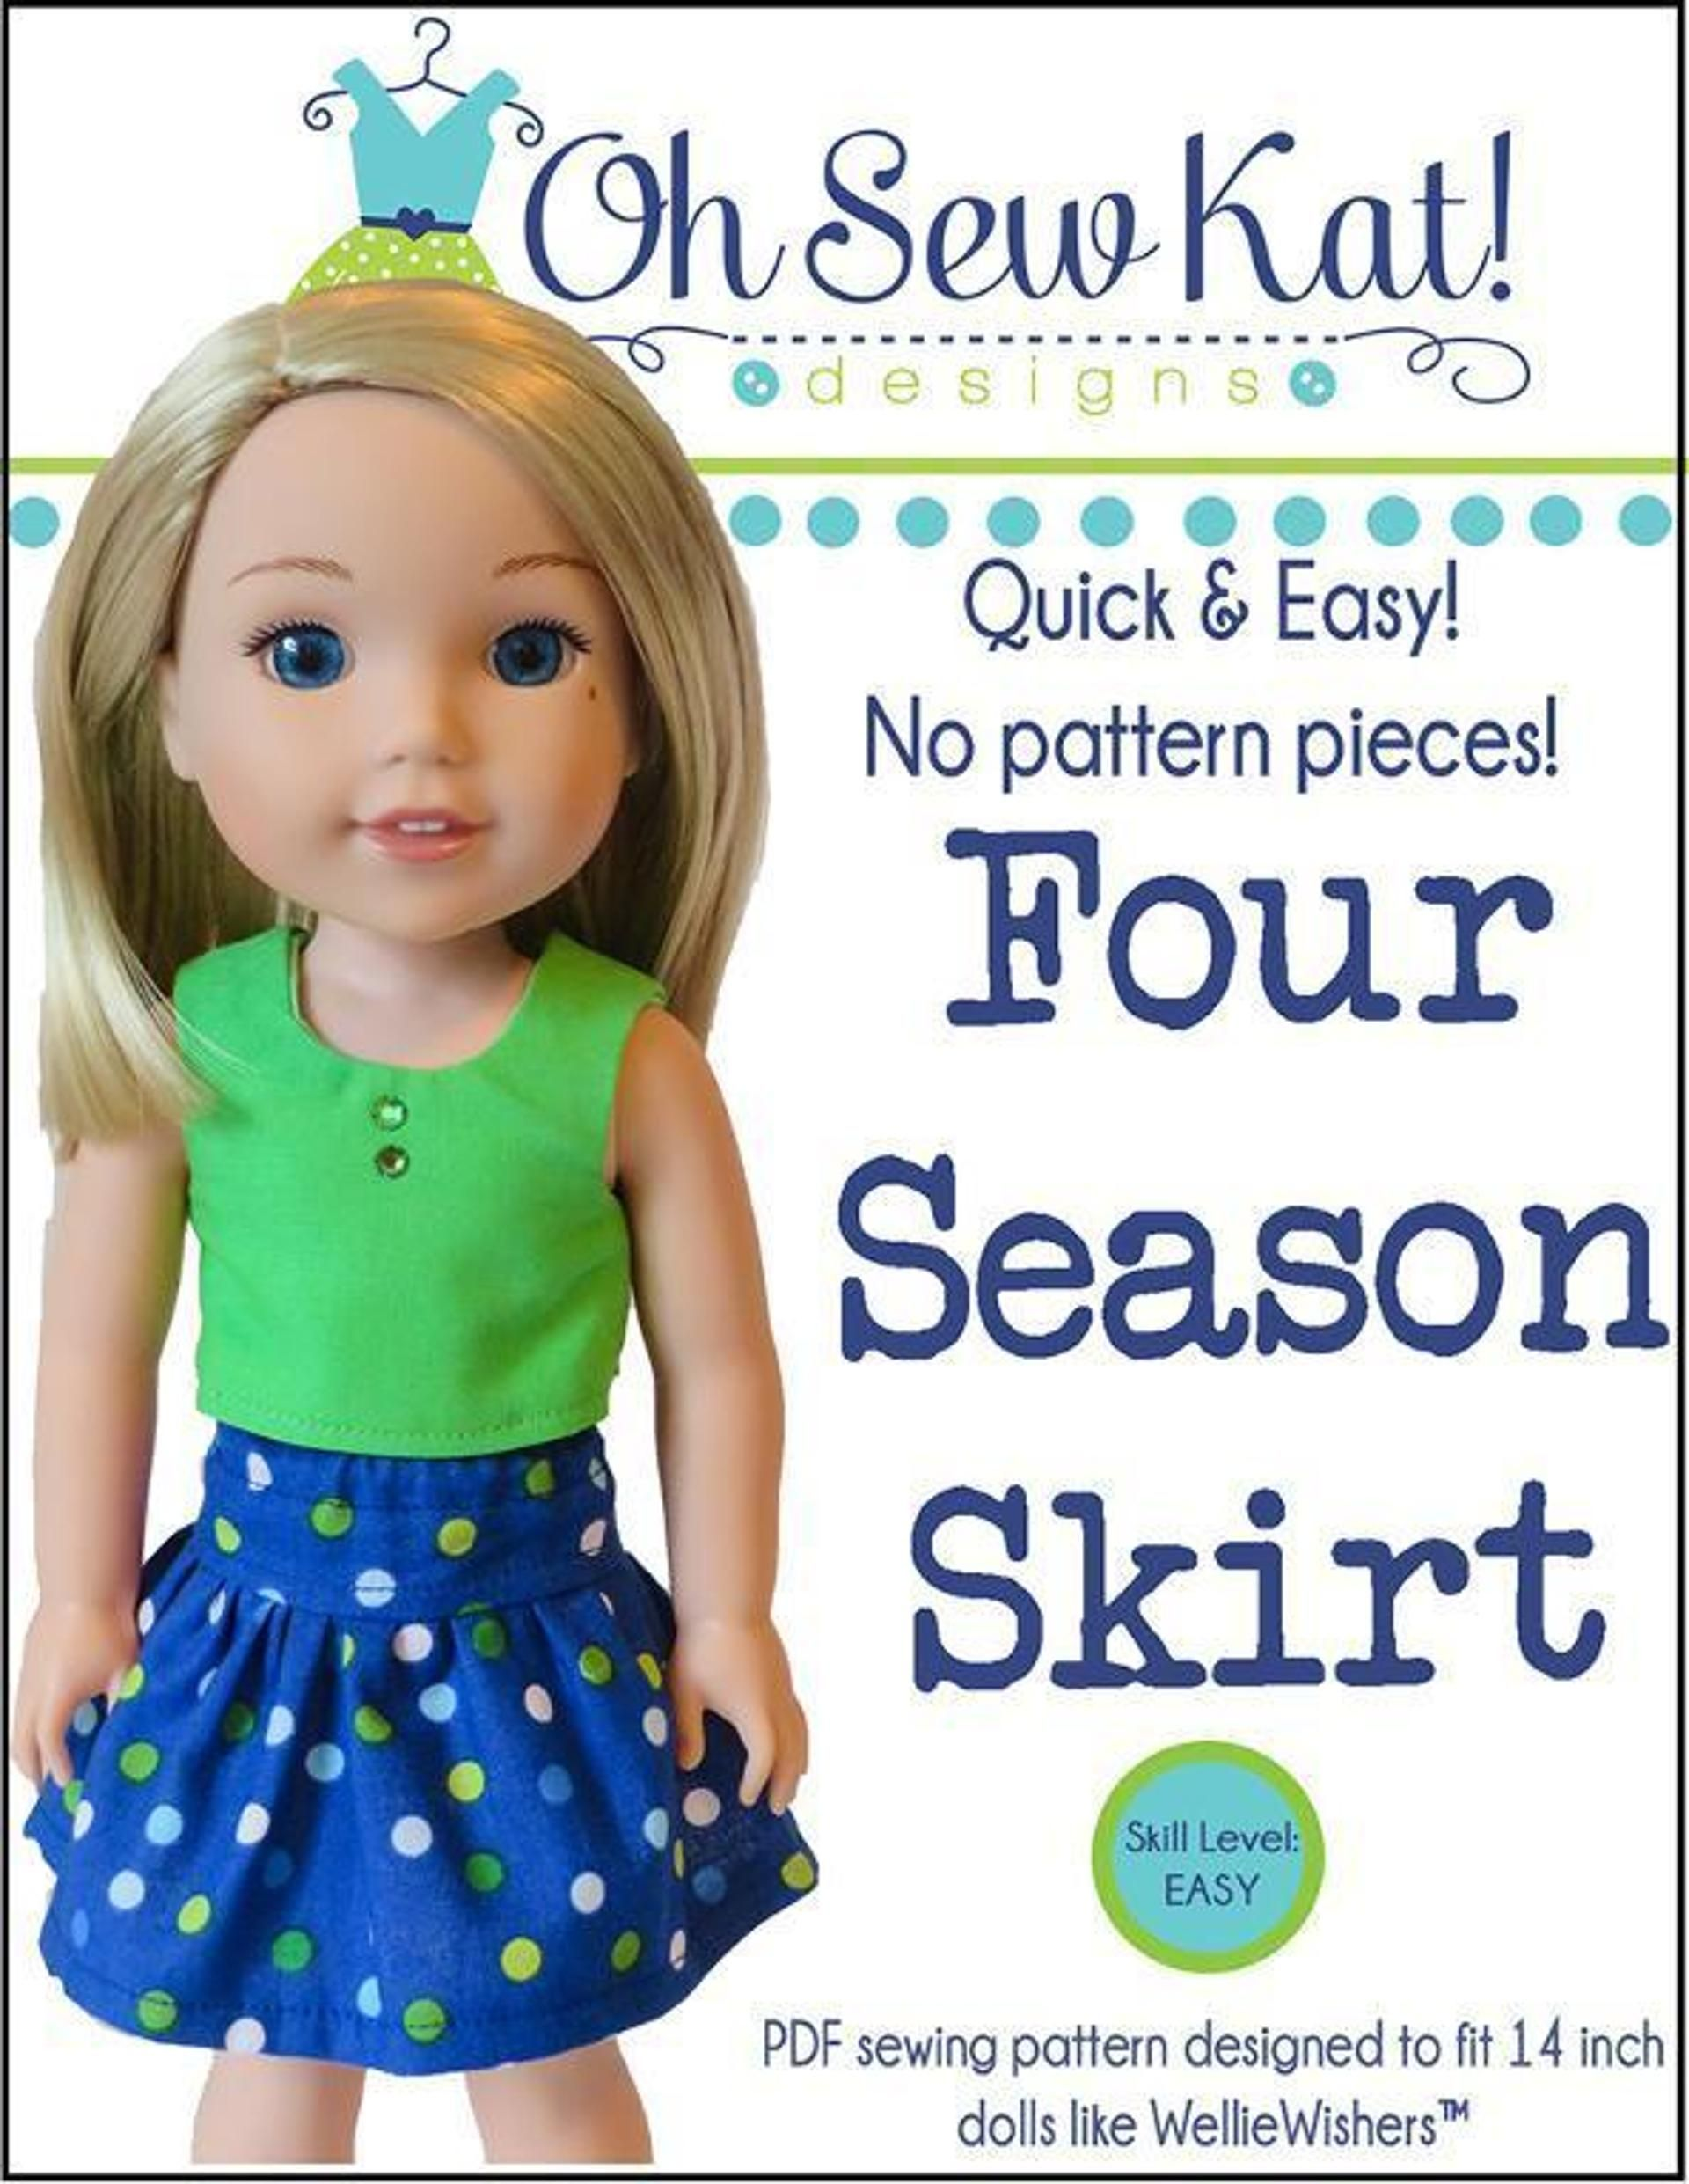 Free Welliewishers Doll Skirt Four Season Skirt